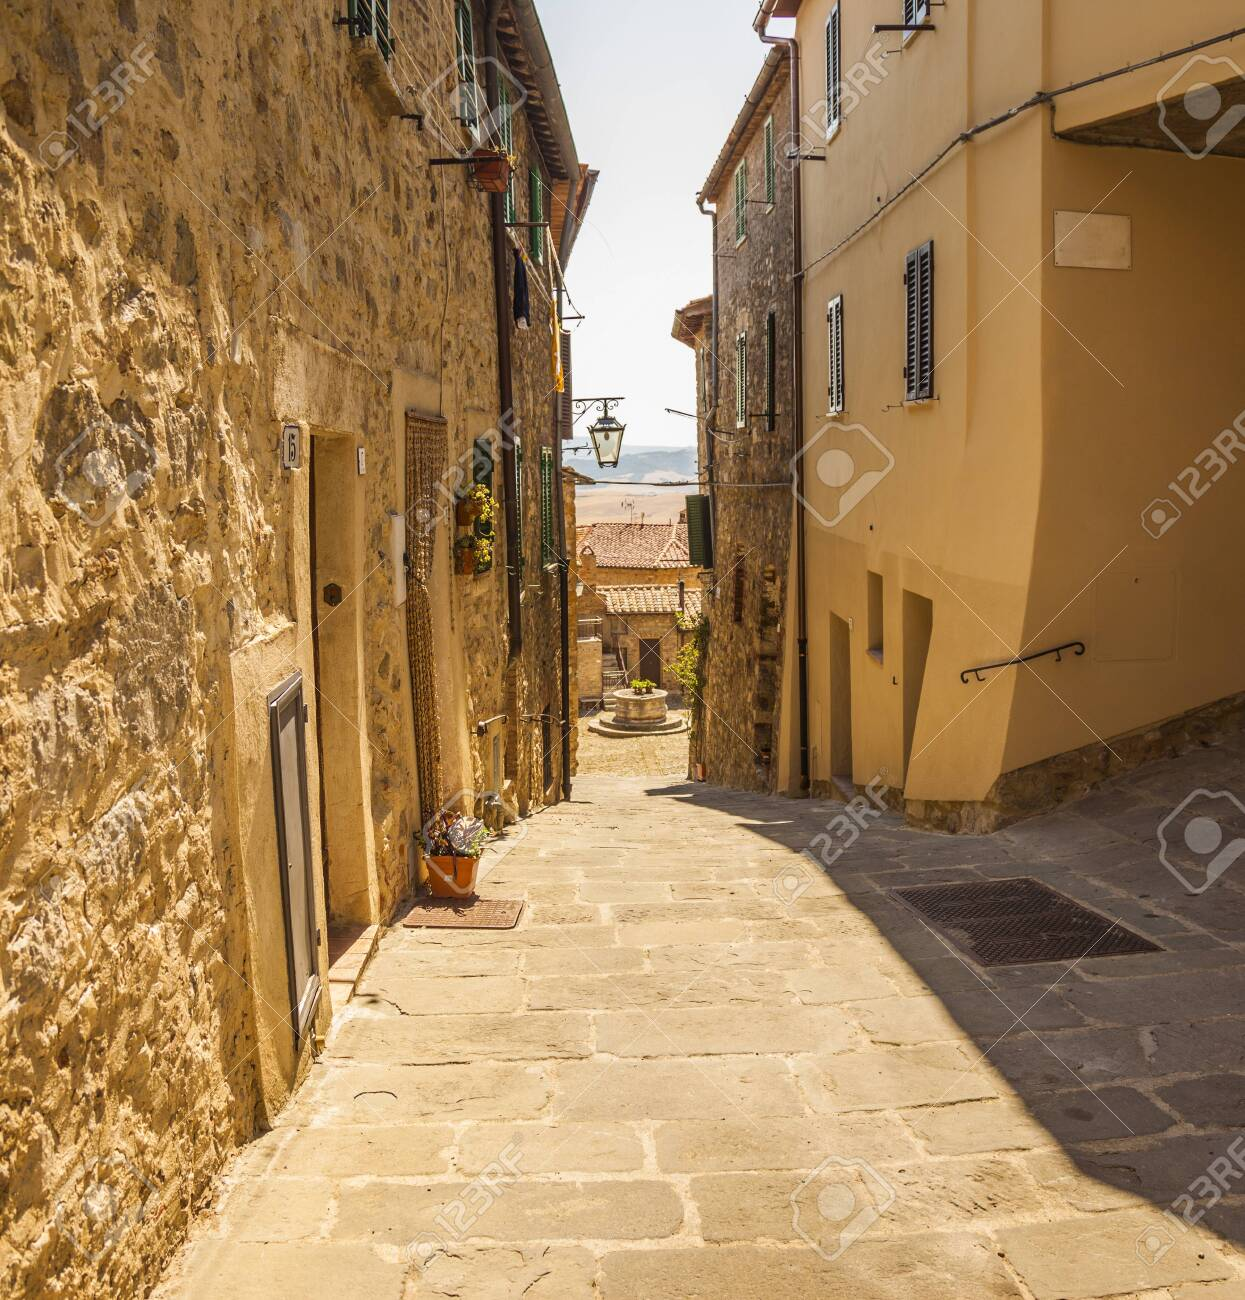 A typical small street of Castiglione d'Orcia, an ancient village in Tuscany, Italy - 136078628